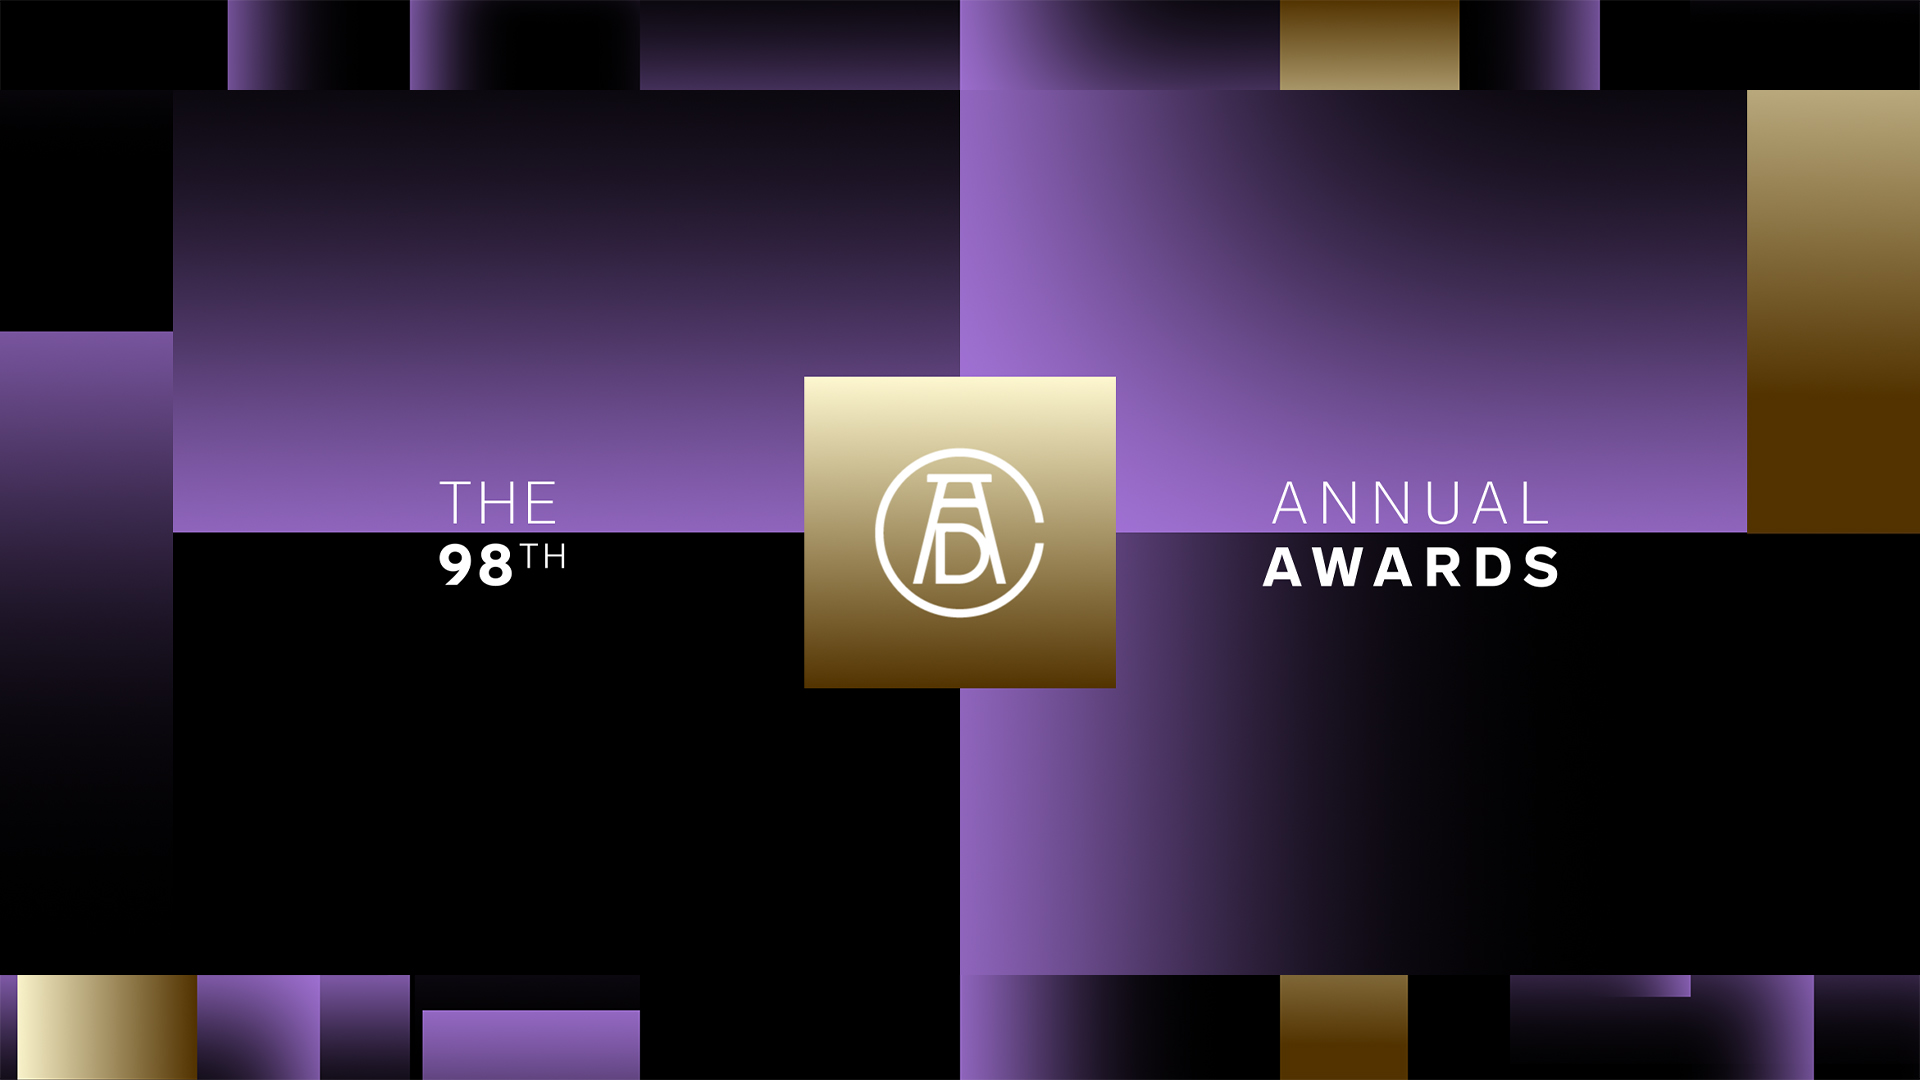 Designing for the ADC 98th Annual Awards Show